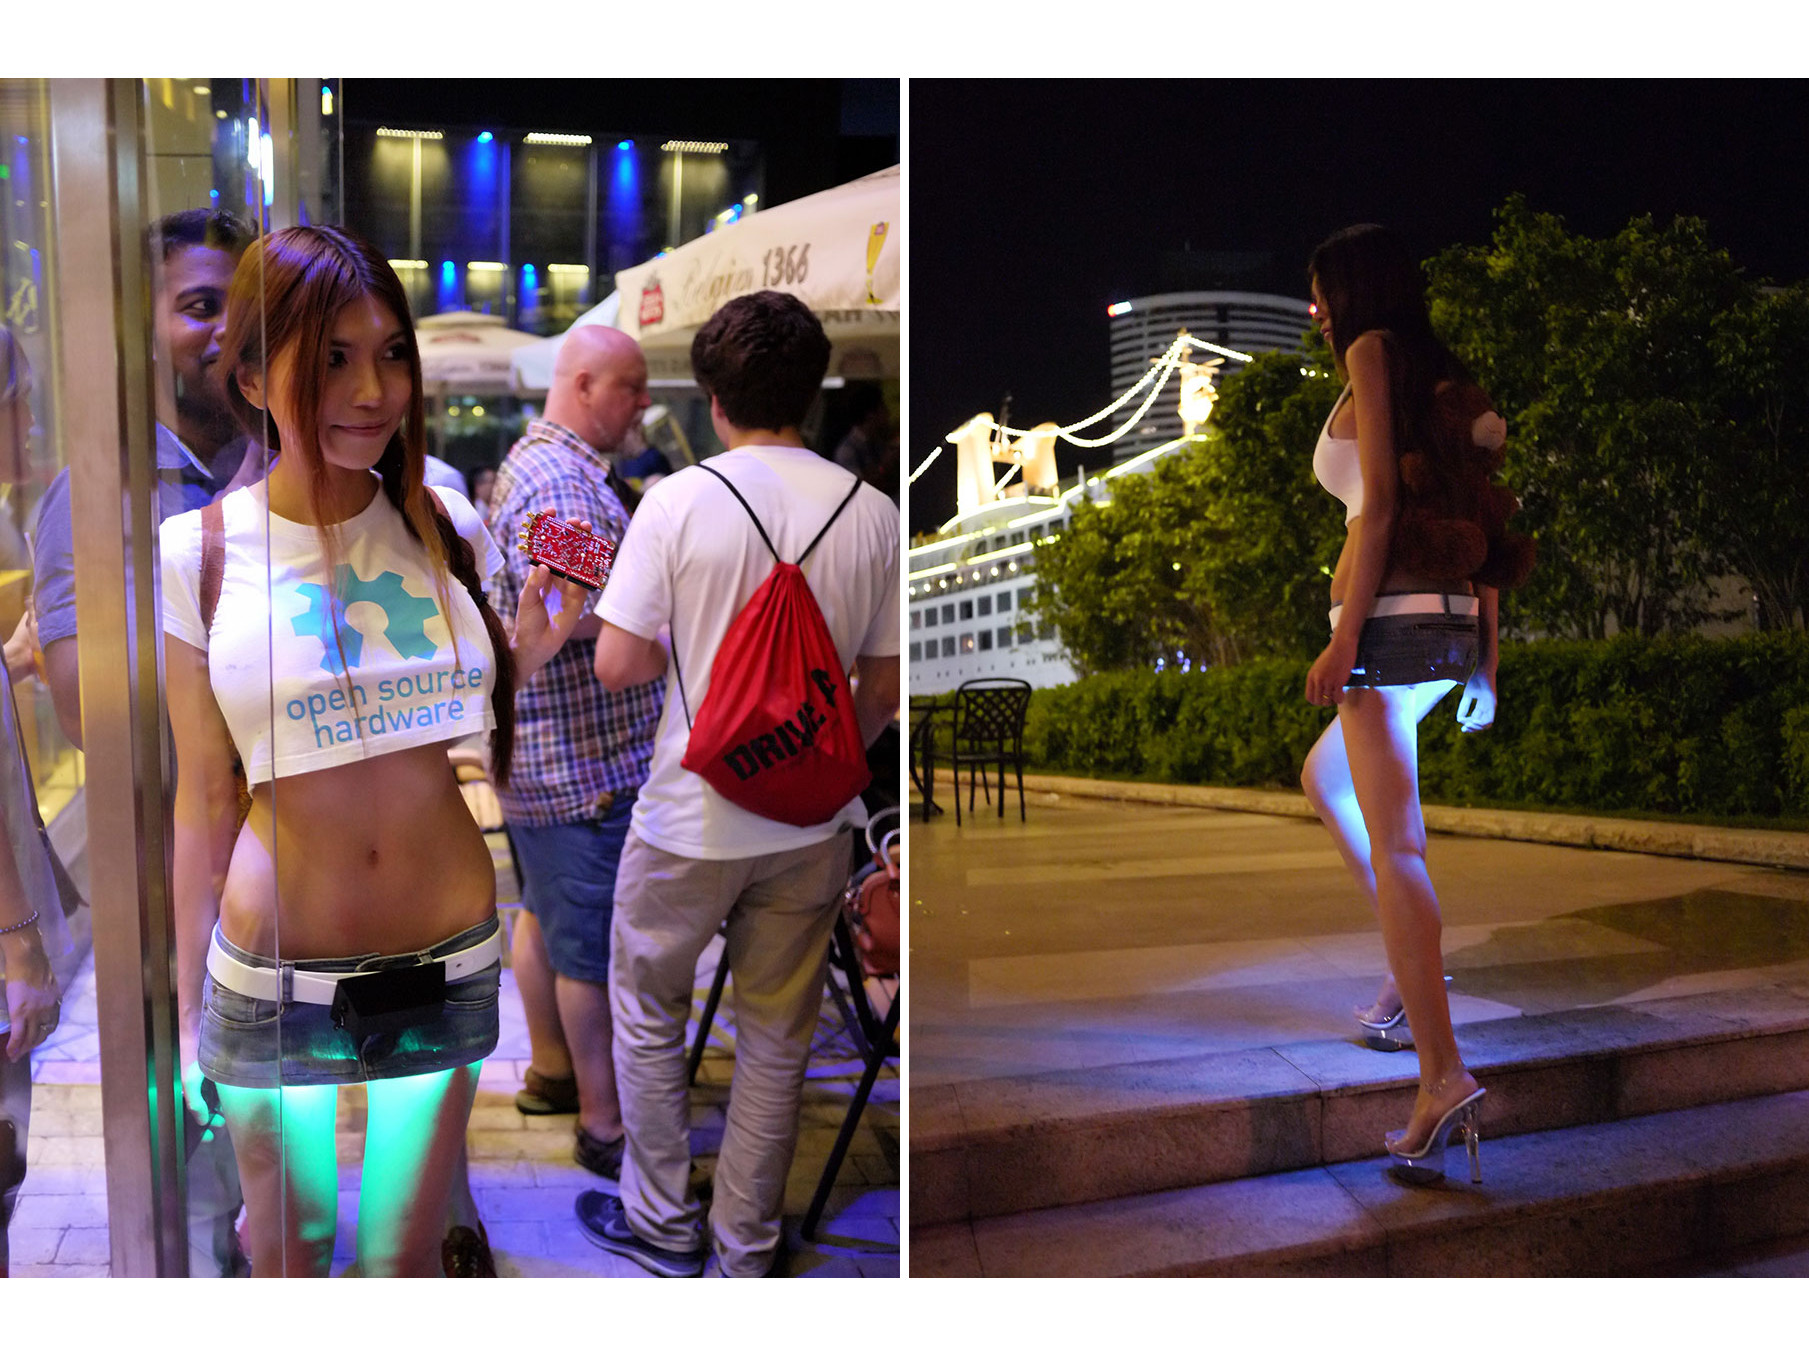 An unidentified woman wears an LED-lighted miniskirt of her own design at a local hardware hacker's meetup (left) and on the street (right).